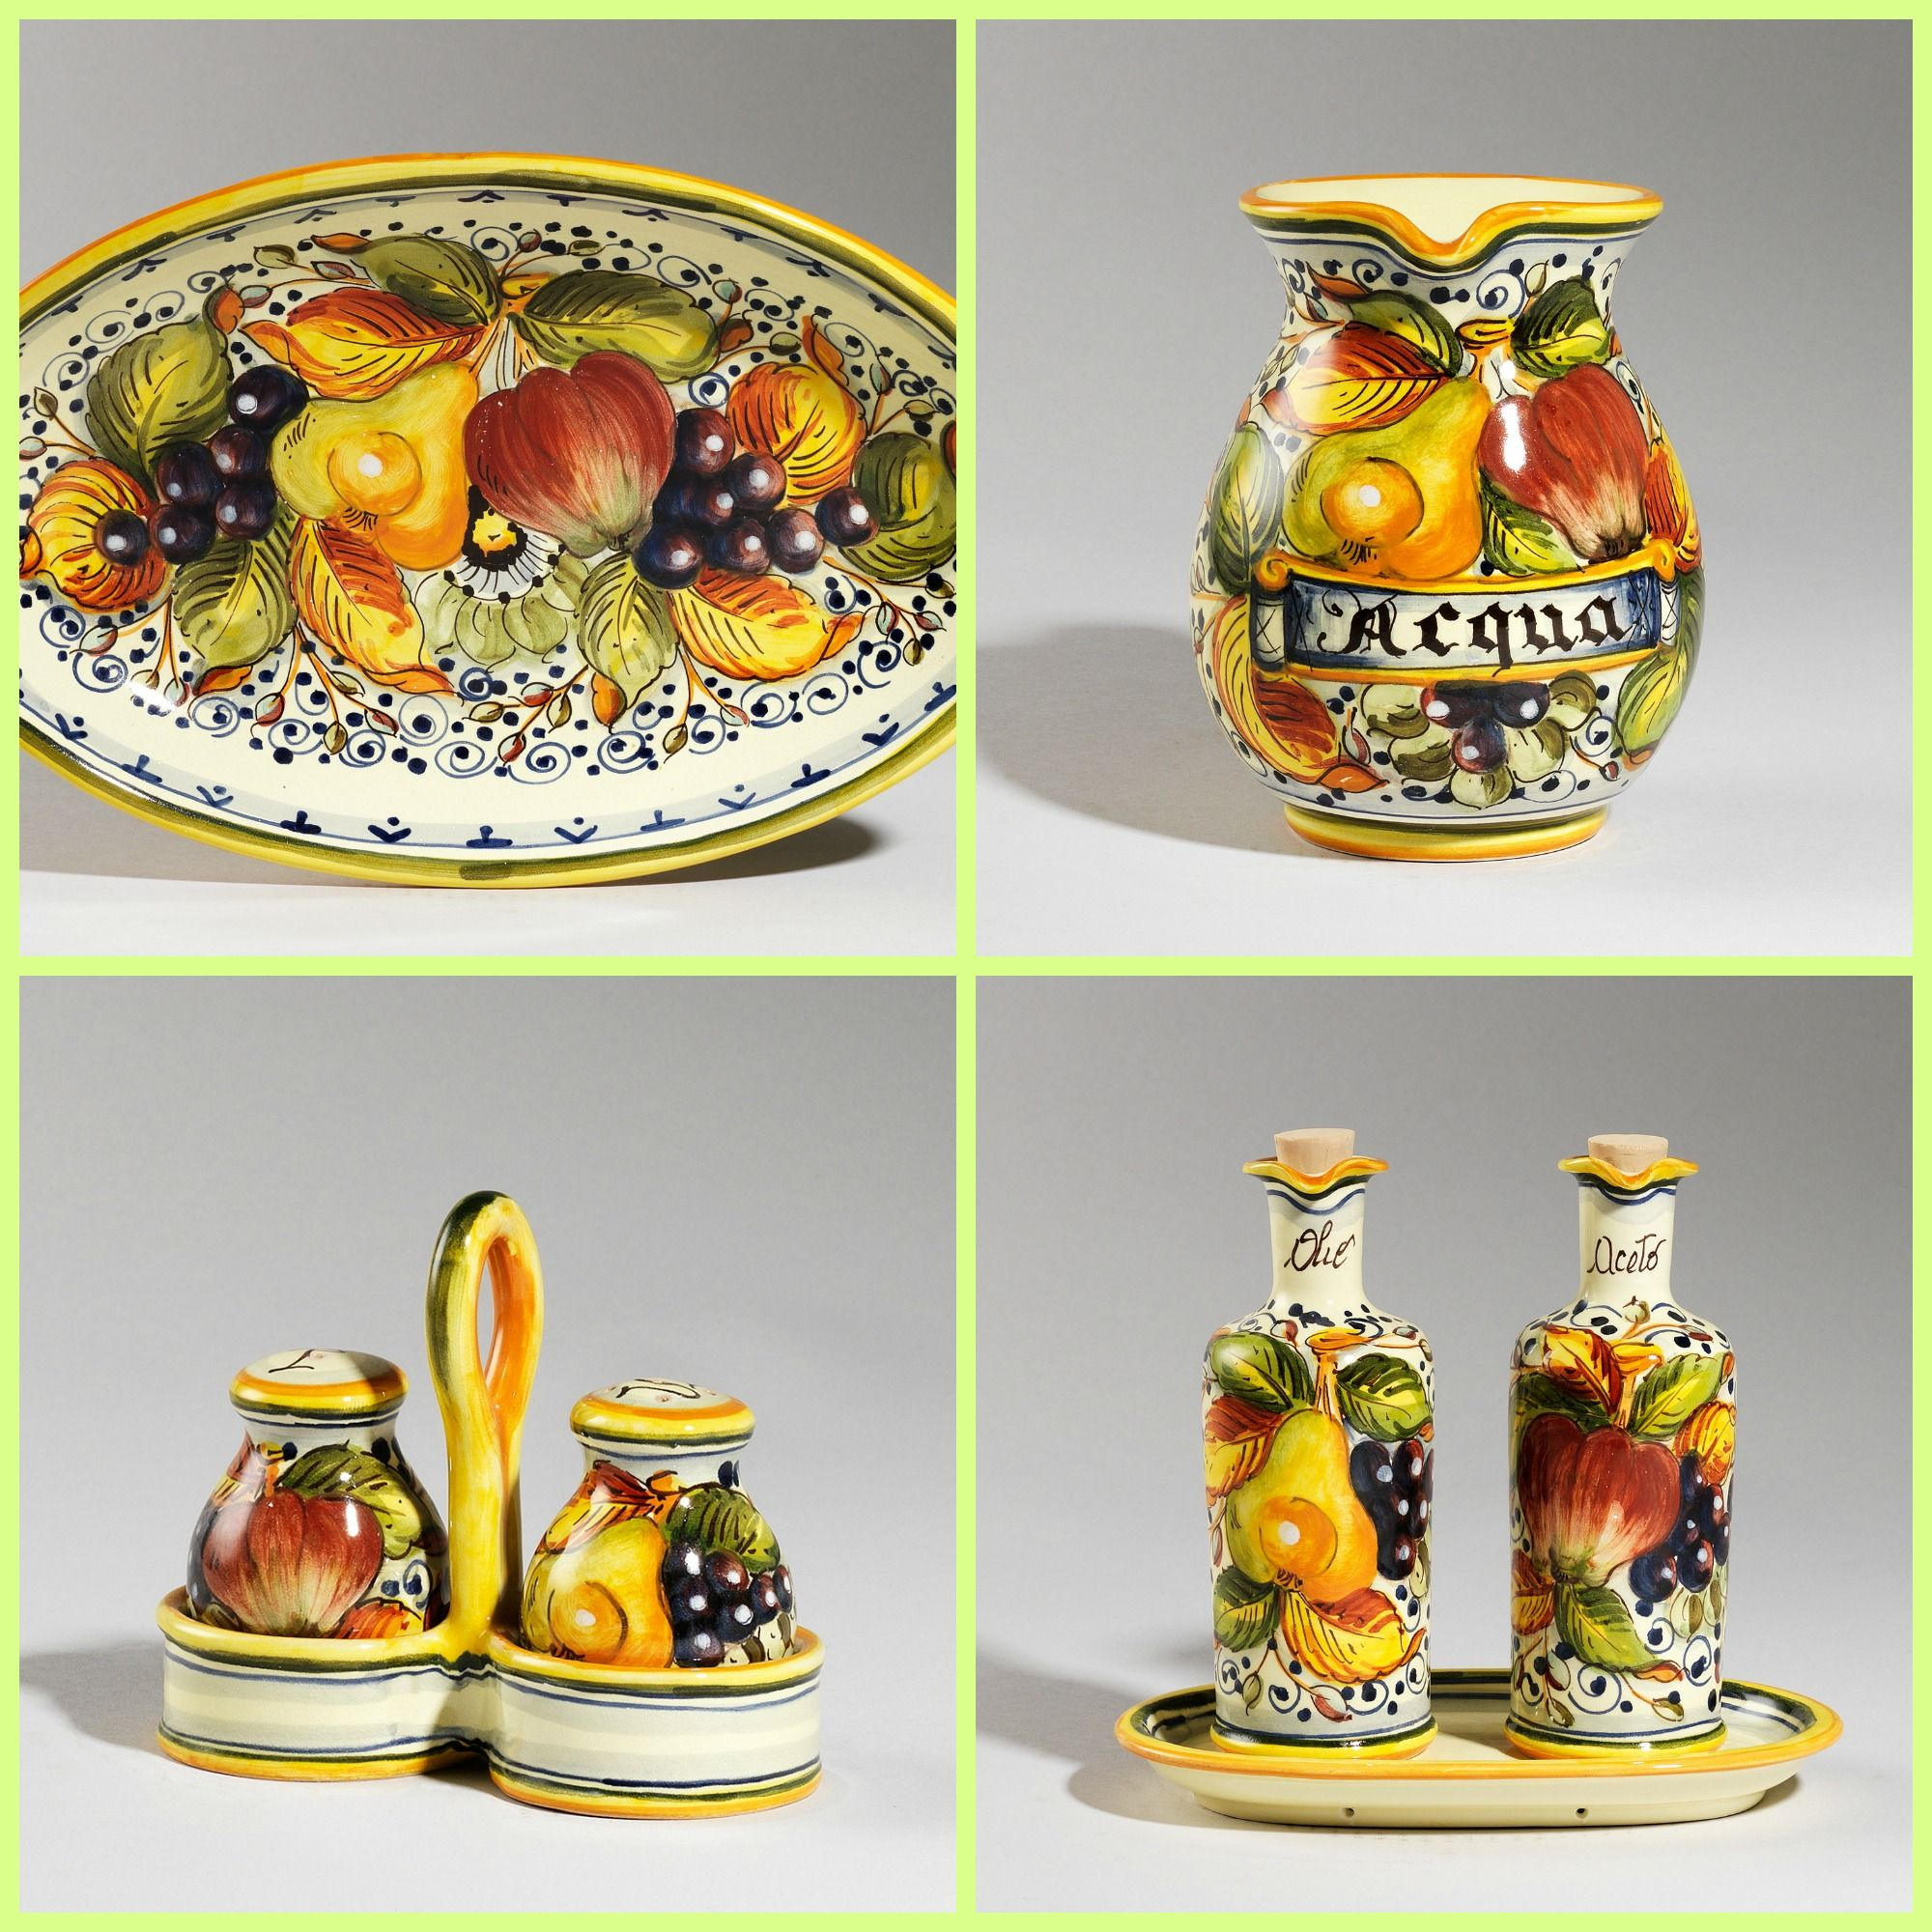 Dress your table with colorful handmade ceramics.  http://www.artshoptuscany.com/